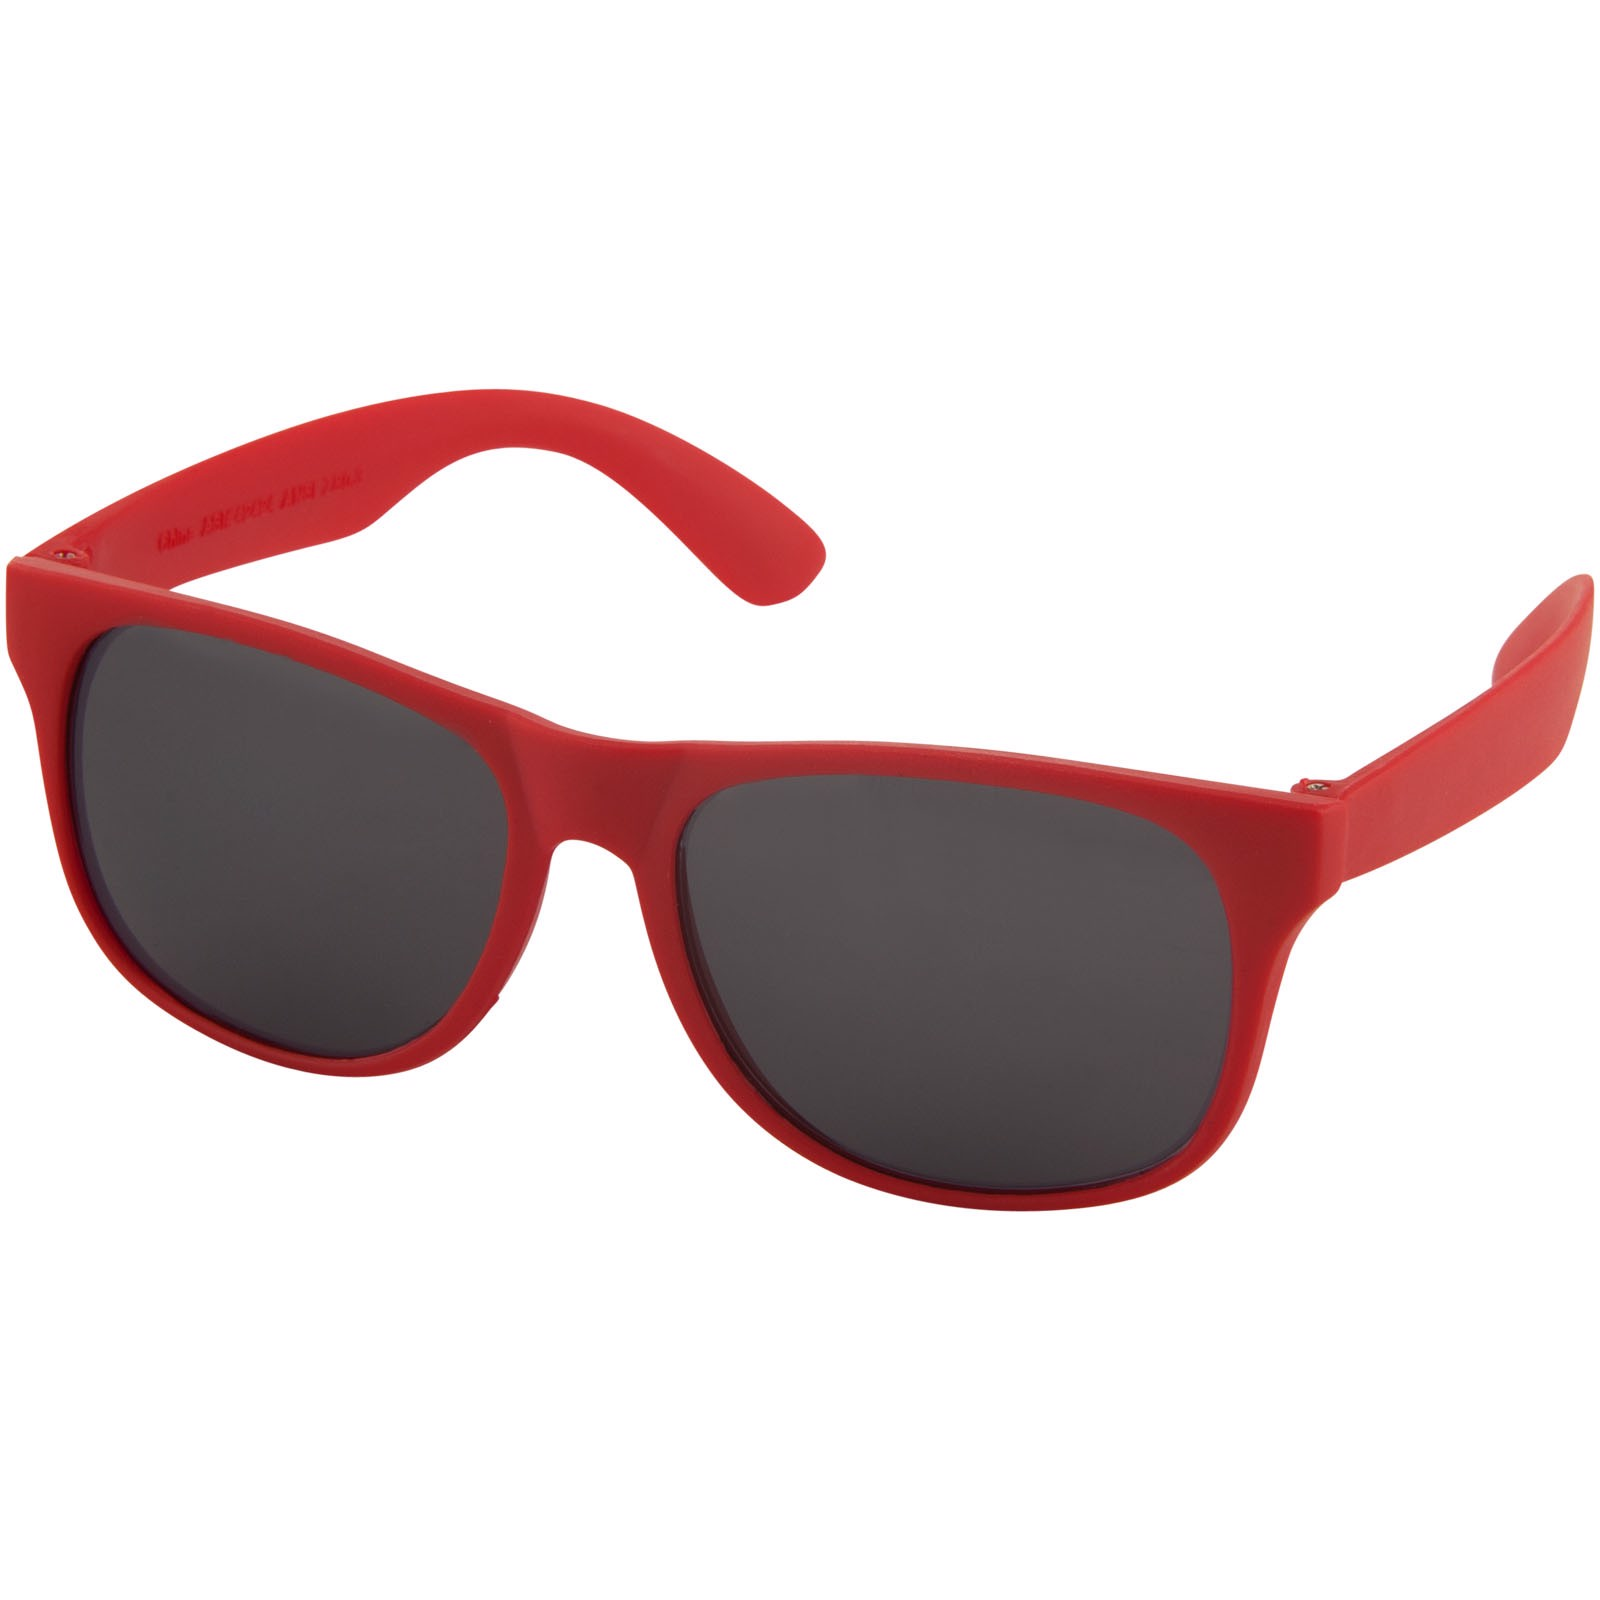 Retro single coloured sunglasses - Red